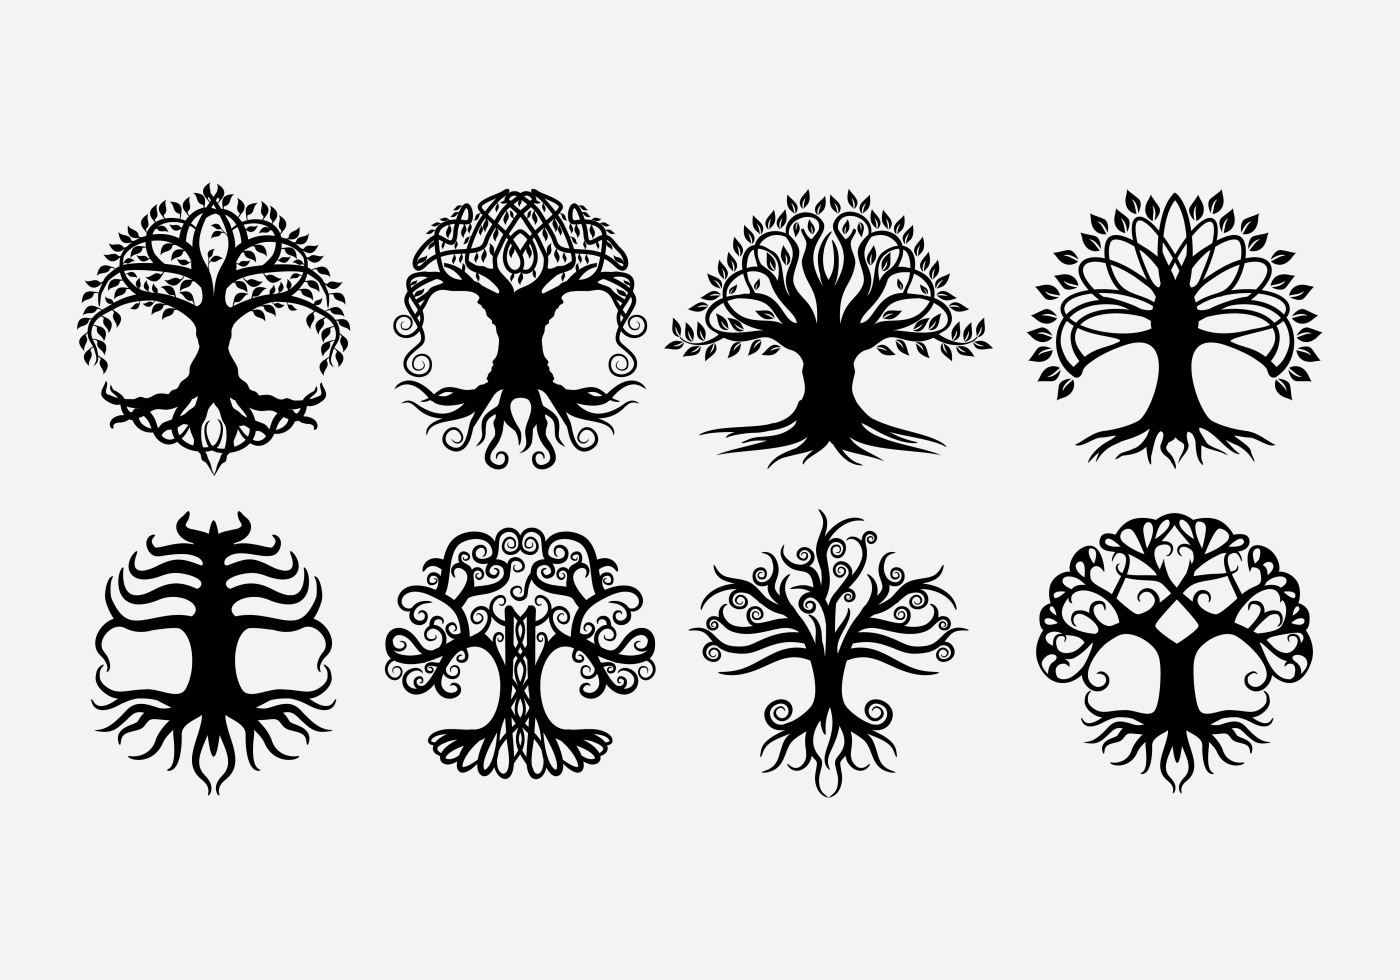 celtic tree vectors download free vector art  stock graphics   images brush stroke vector png brush stroke vector graphic